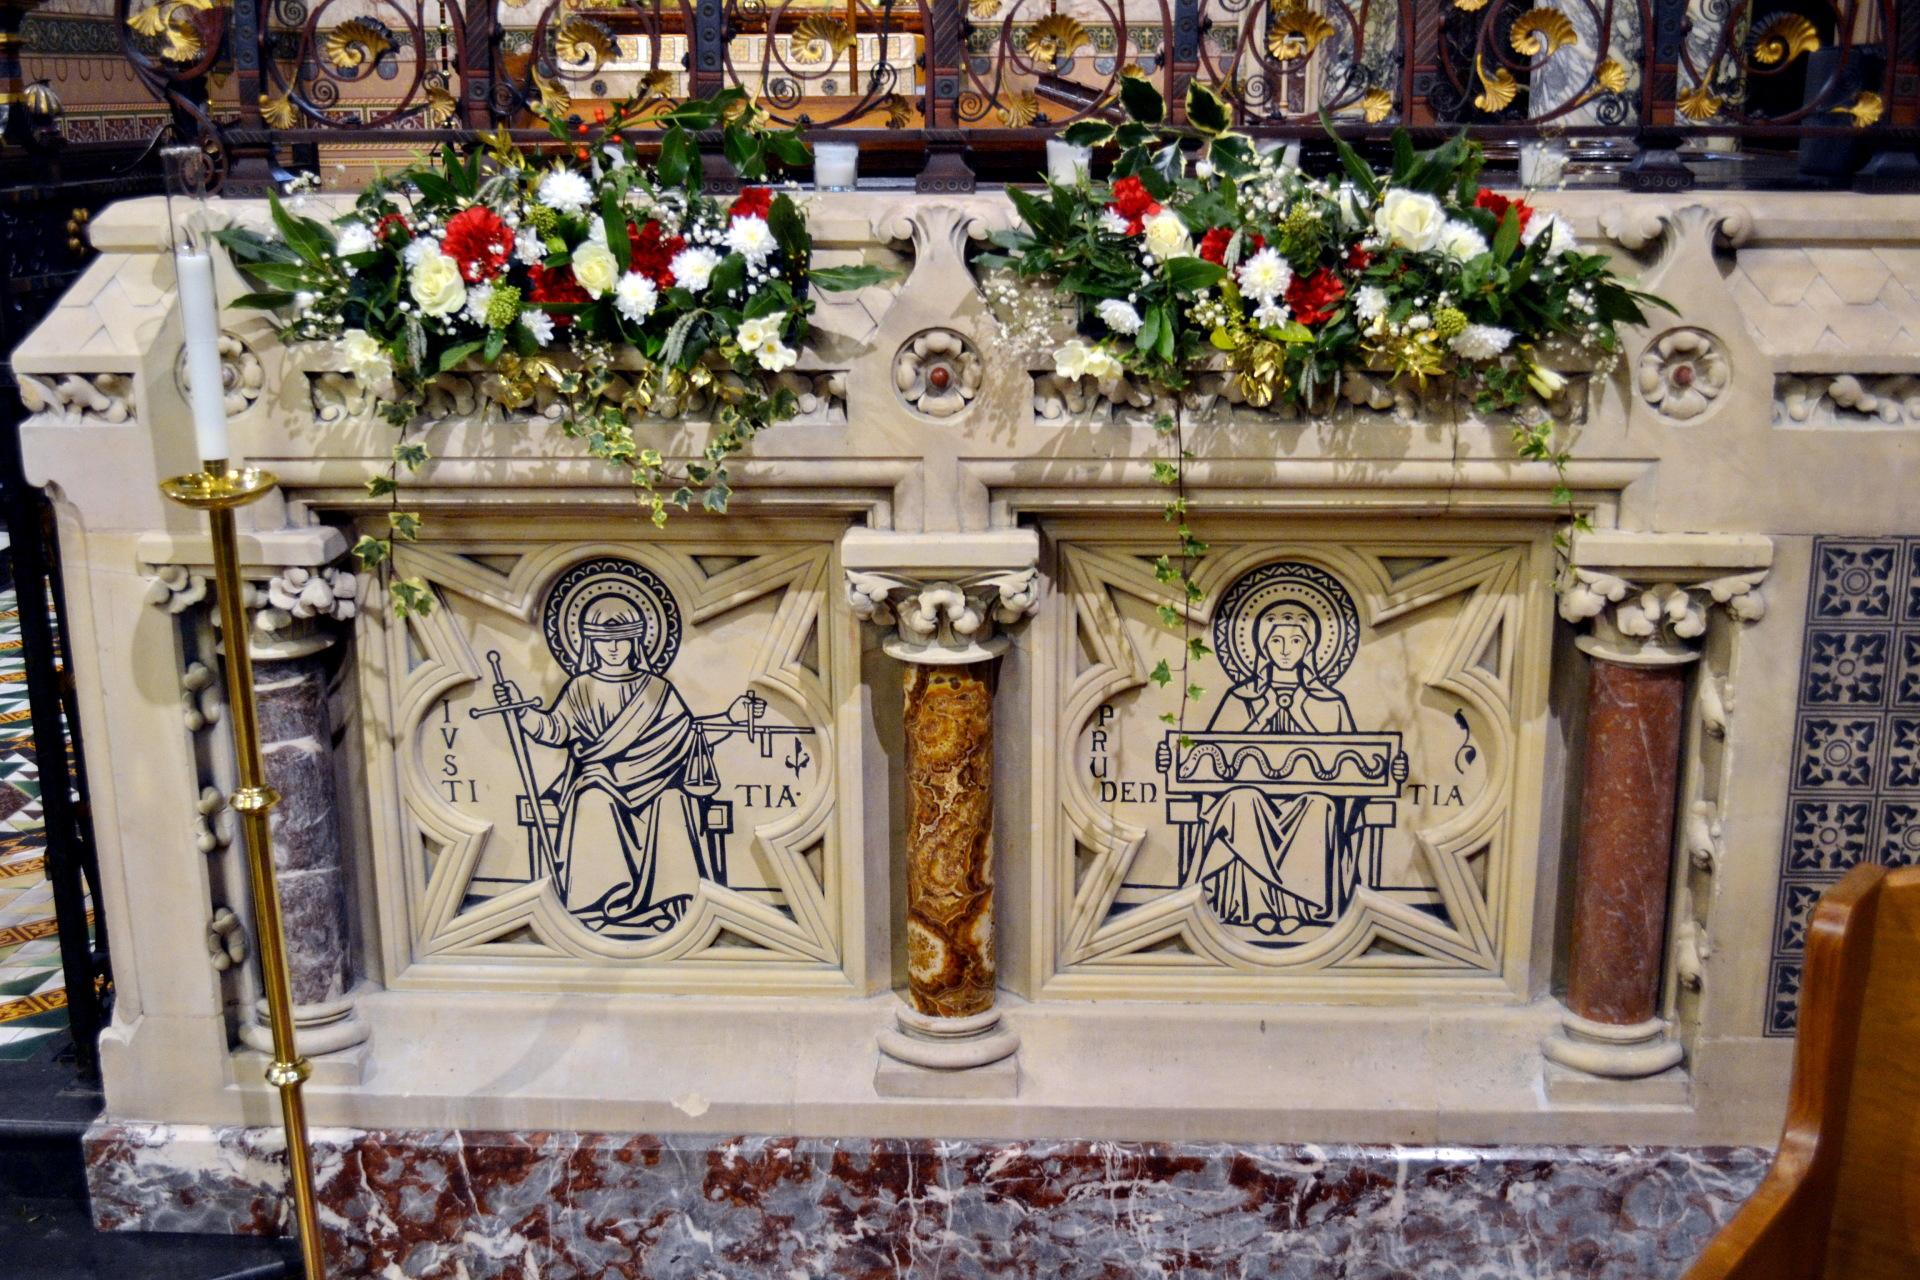 The Cardinal Virtues of Justice & Prudence